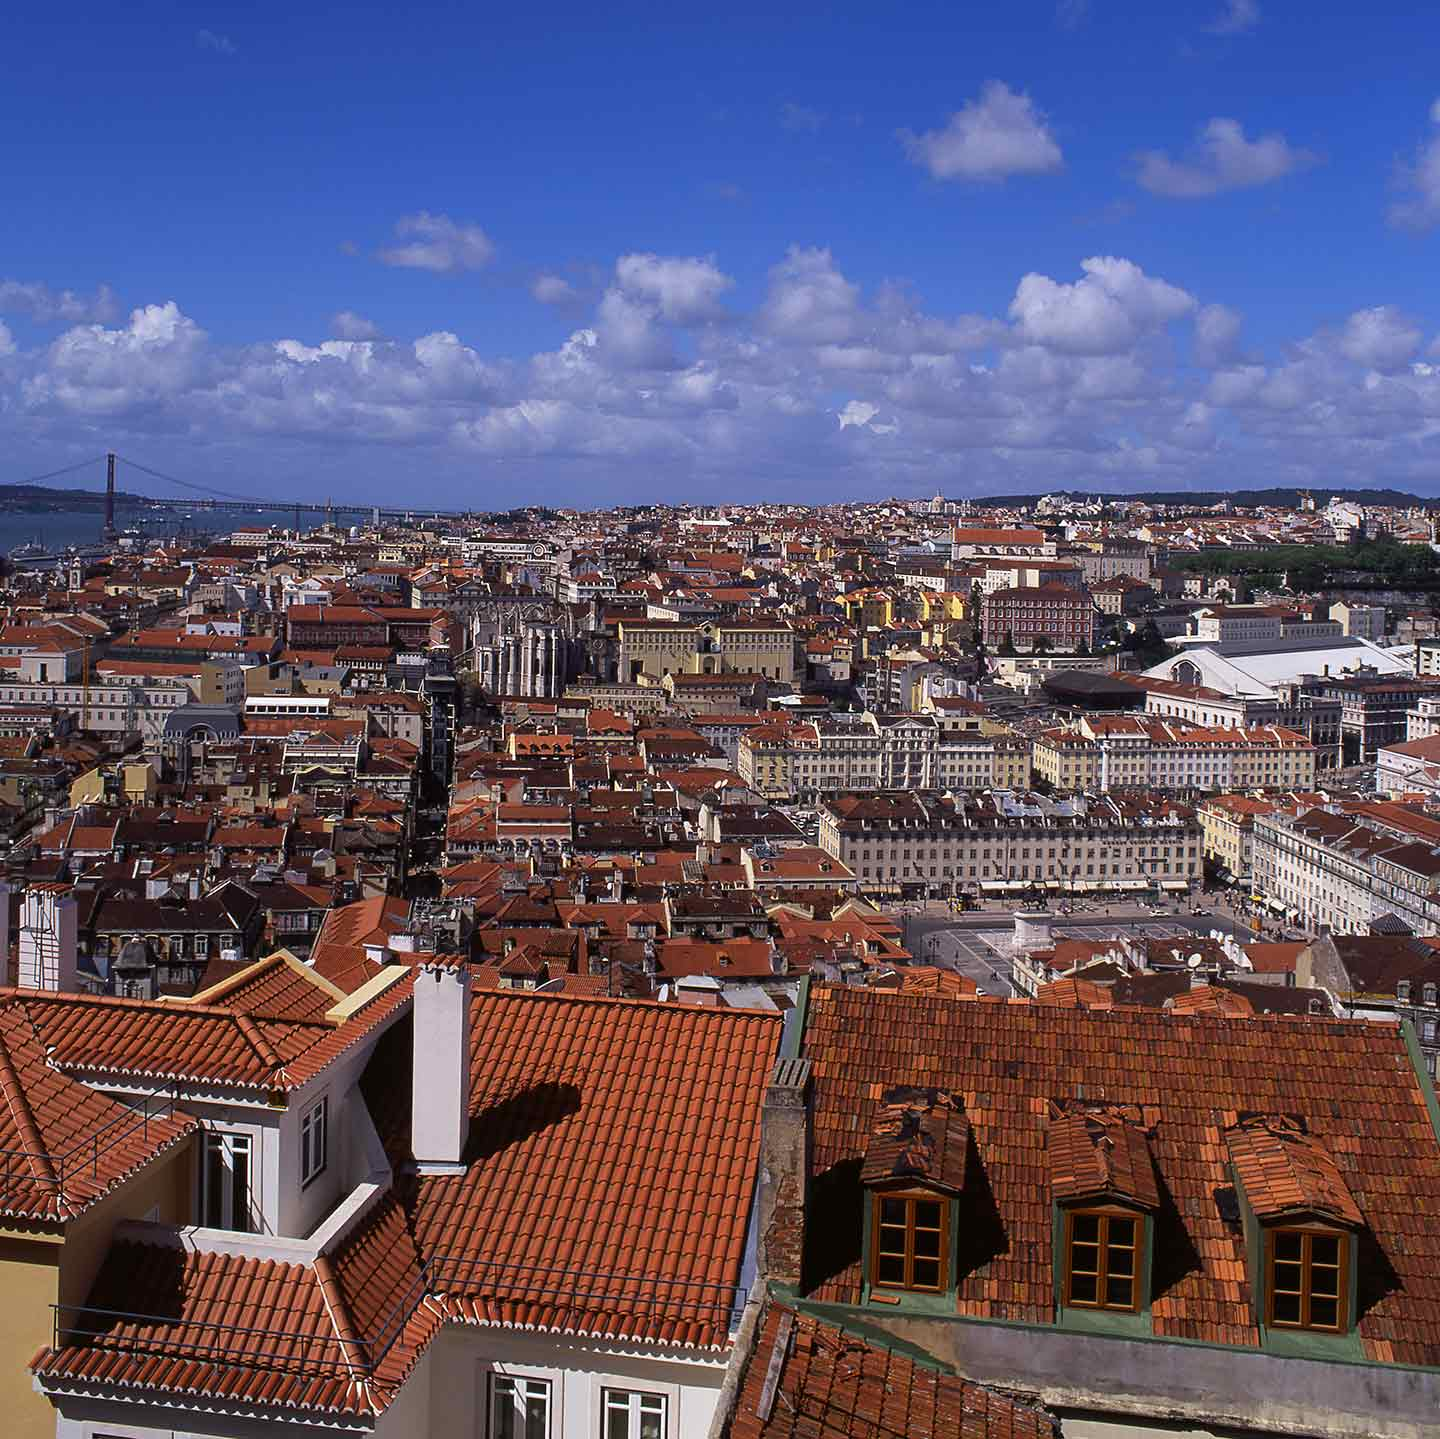 Image of the view from the Castelo de São Jorge, with the River Tagus in the background